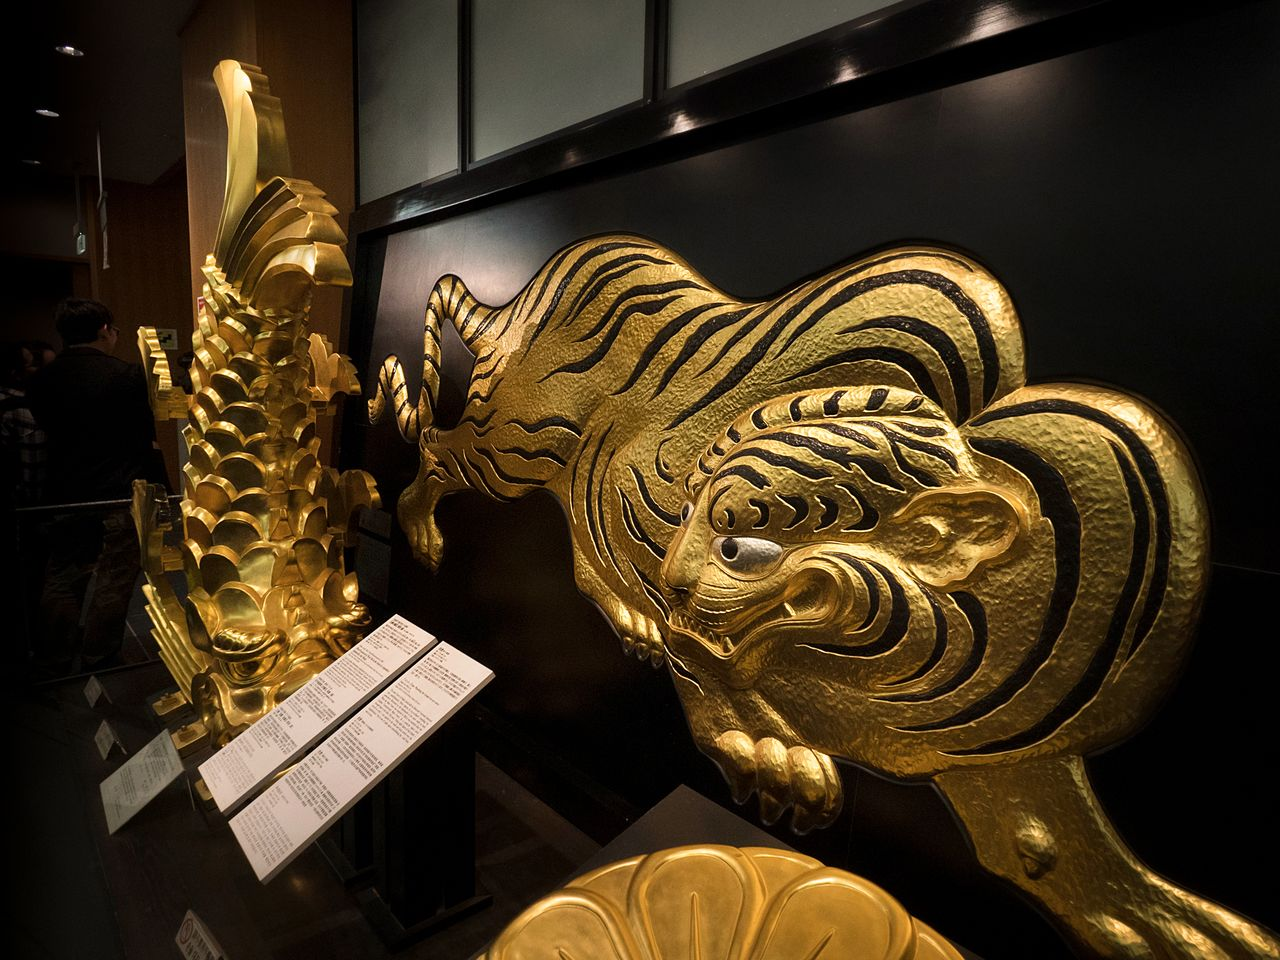 A golden <em>shachihoko</em> roof ornament and tiger are displayed on the second floor.